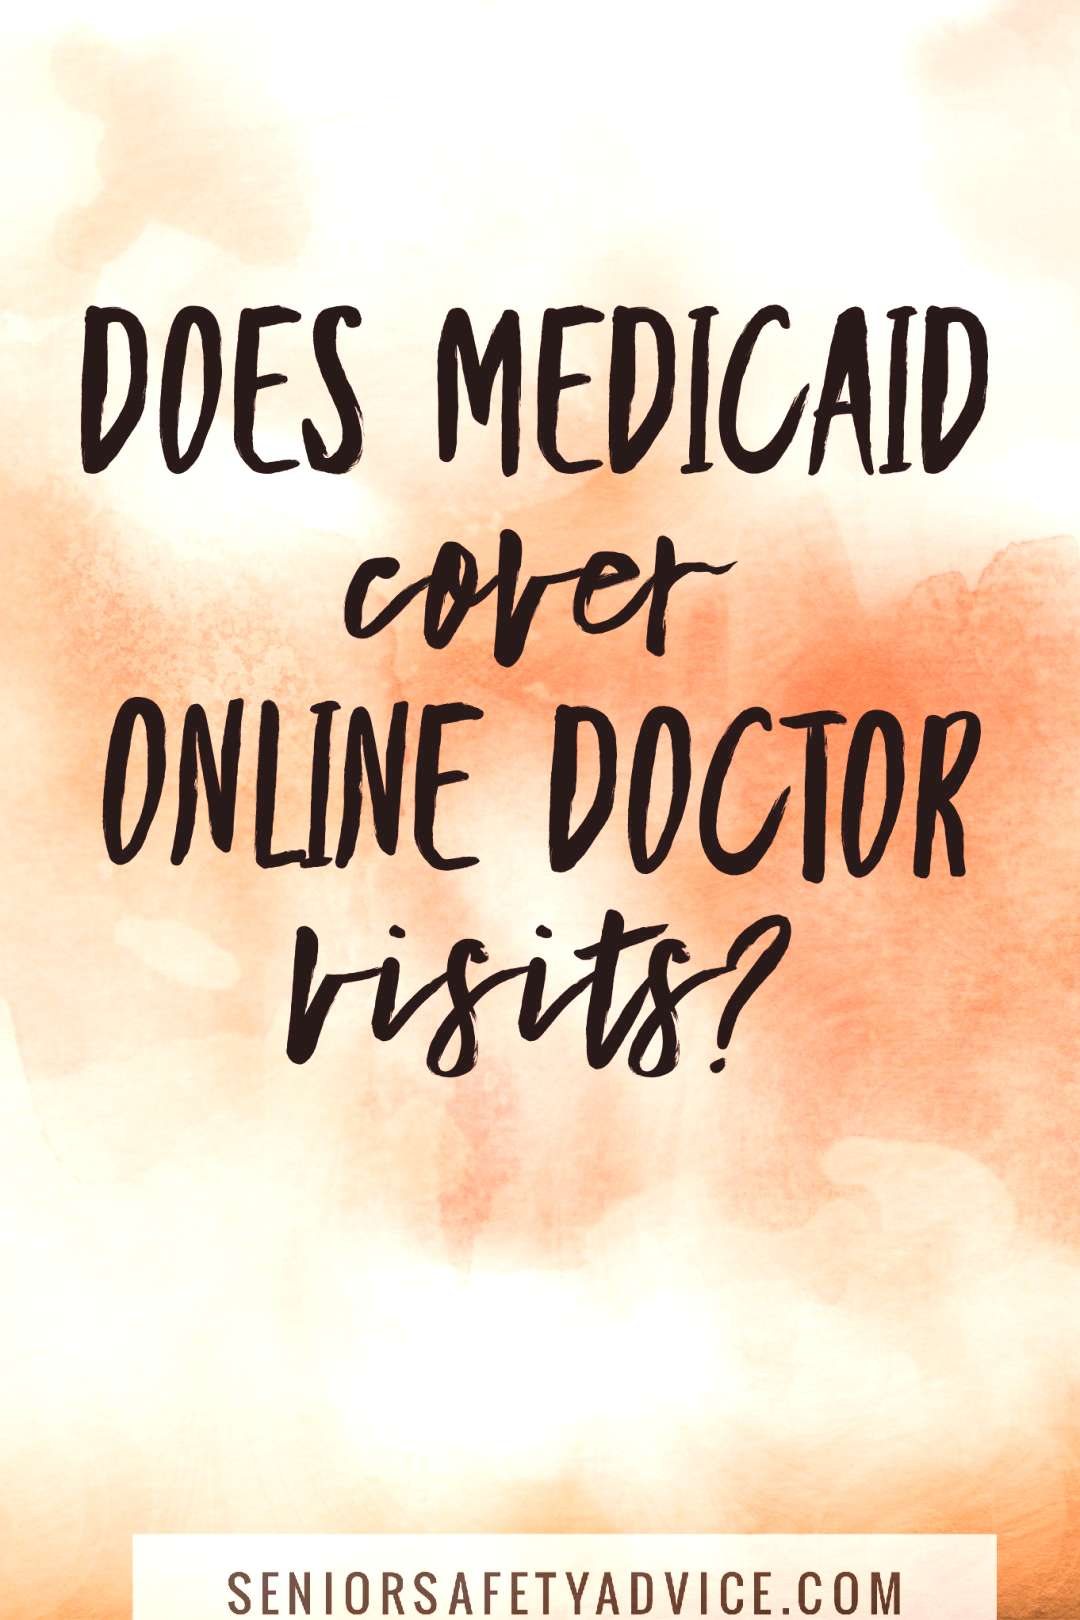 Does Medicaid Cover Telehealth Services? Because Medicaid is different from state to state, its im